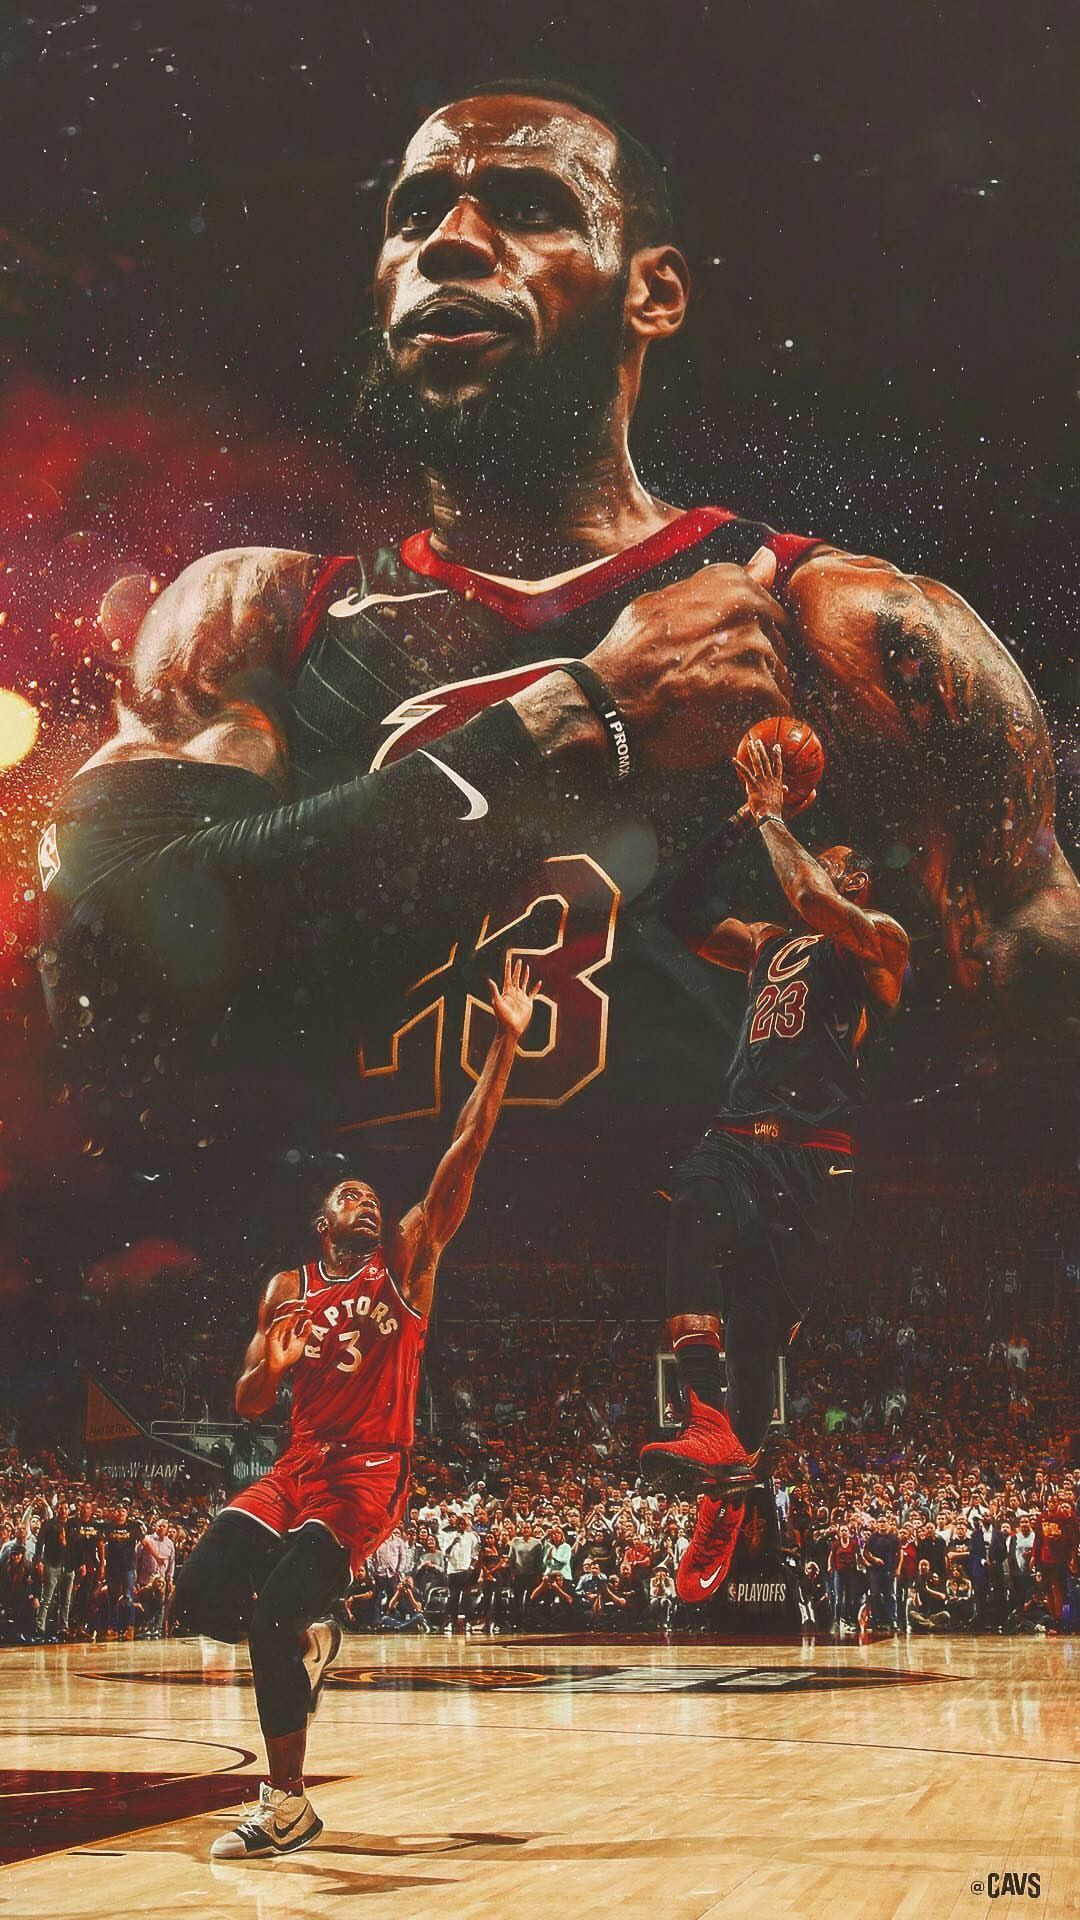 Lebron James Wallpaper Lebron james wallpapers, Nba